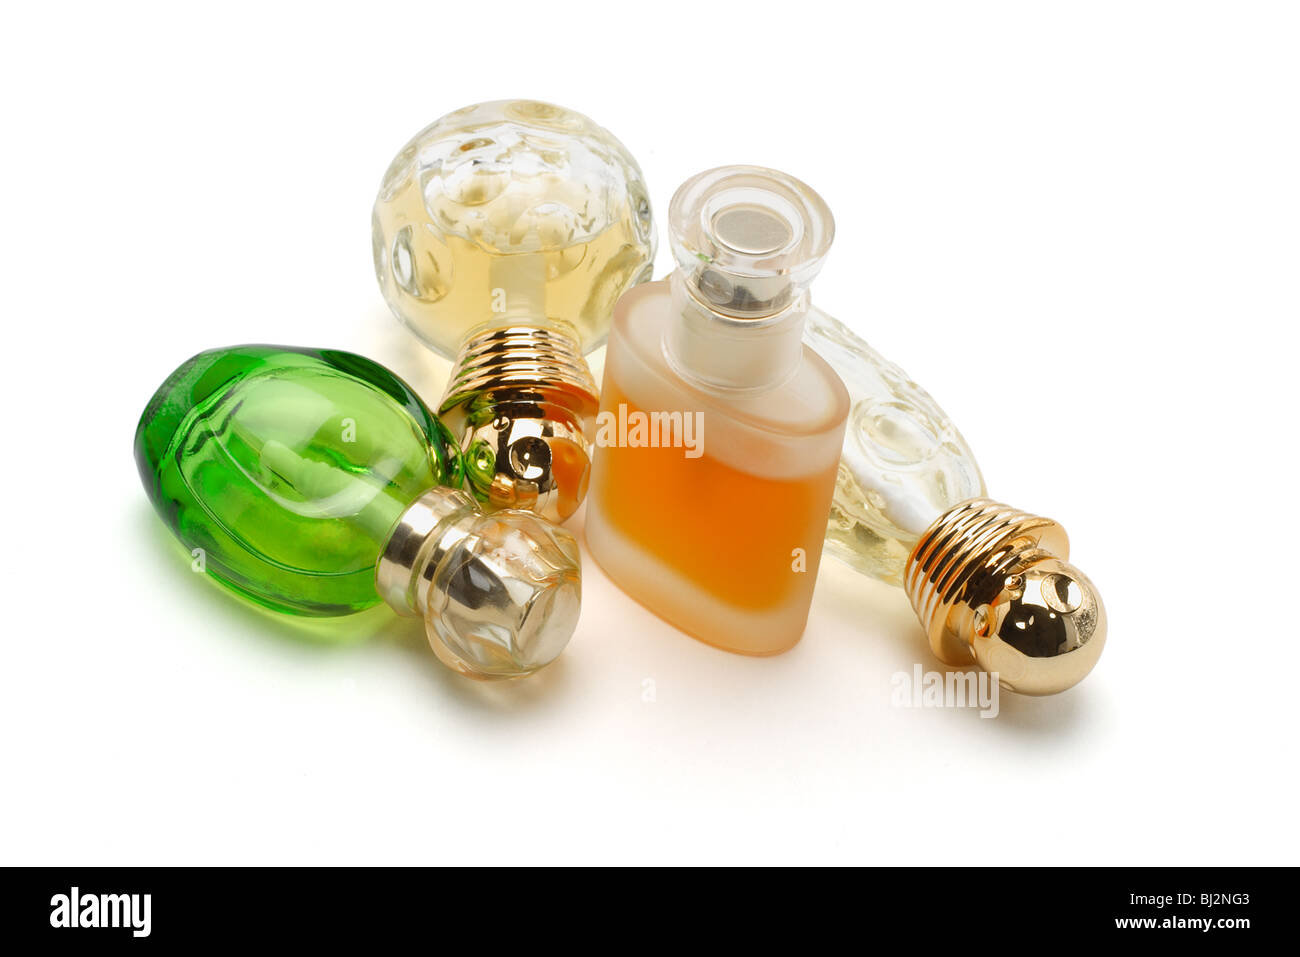 Perfume in glass bottles on white background - Stock Image